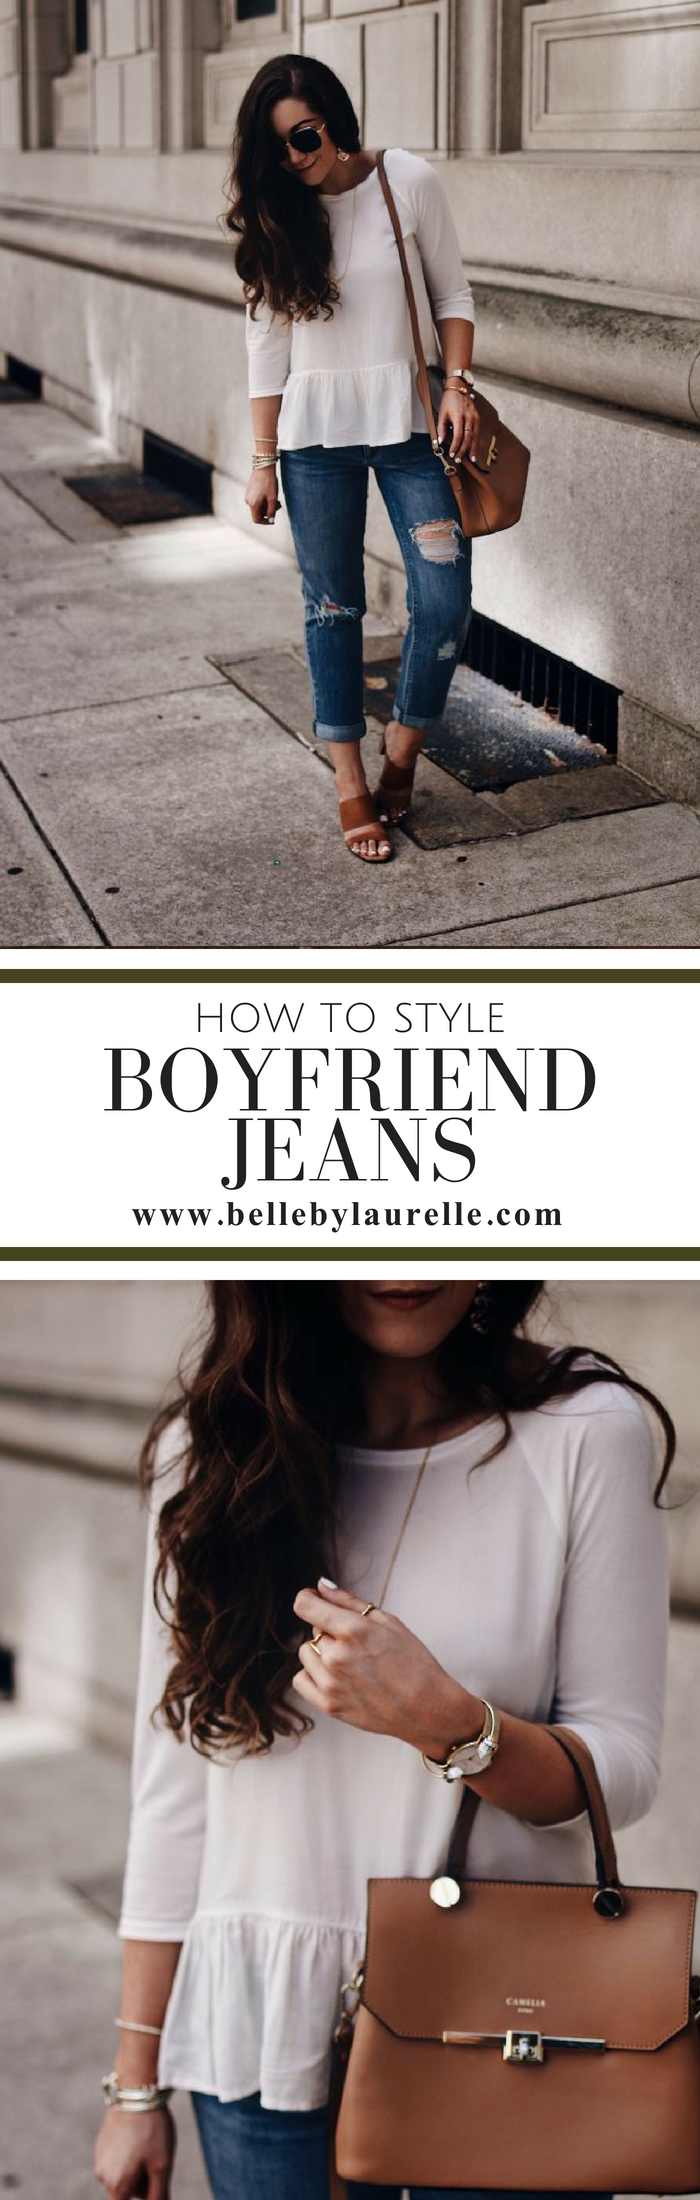 Belle by Laurelle How to Style Boyfriend Jeans